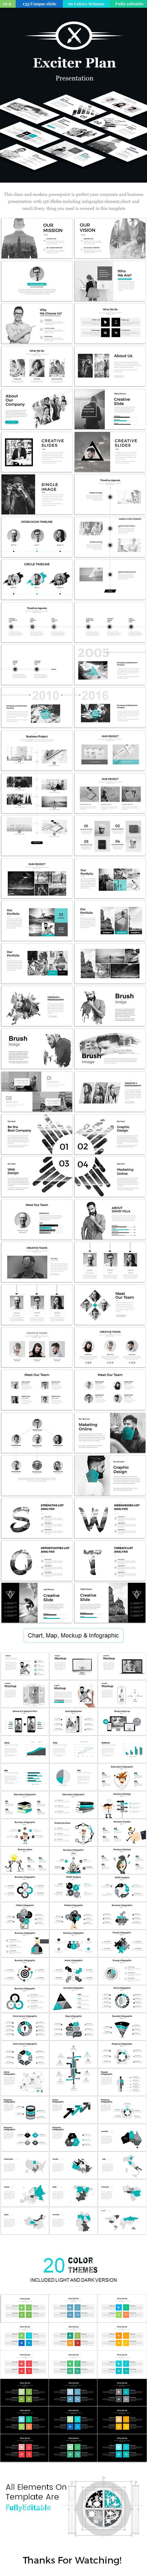 Exciter Plan Powerpoint Template. Download here: http://graphicriver.net/item/exciter-plan-powerpoint-template/15777683?ref=ksioks